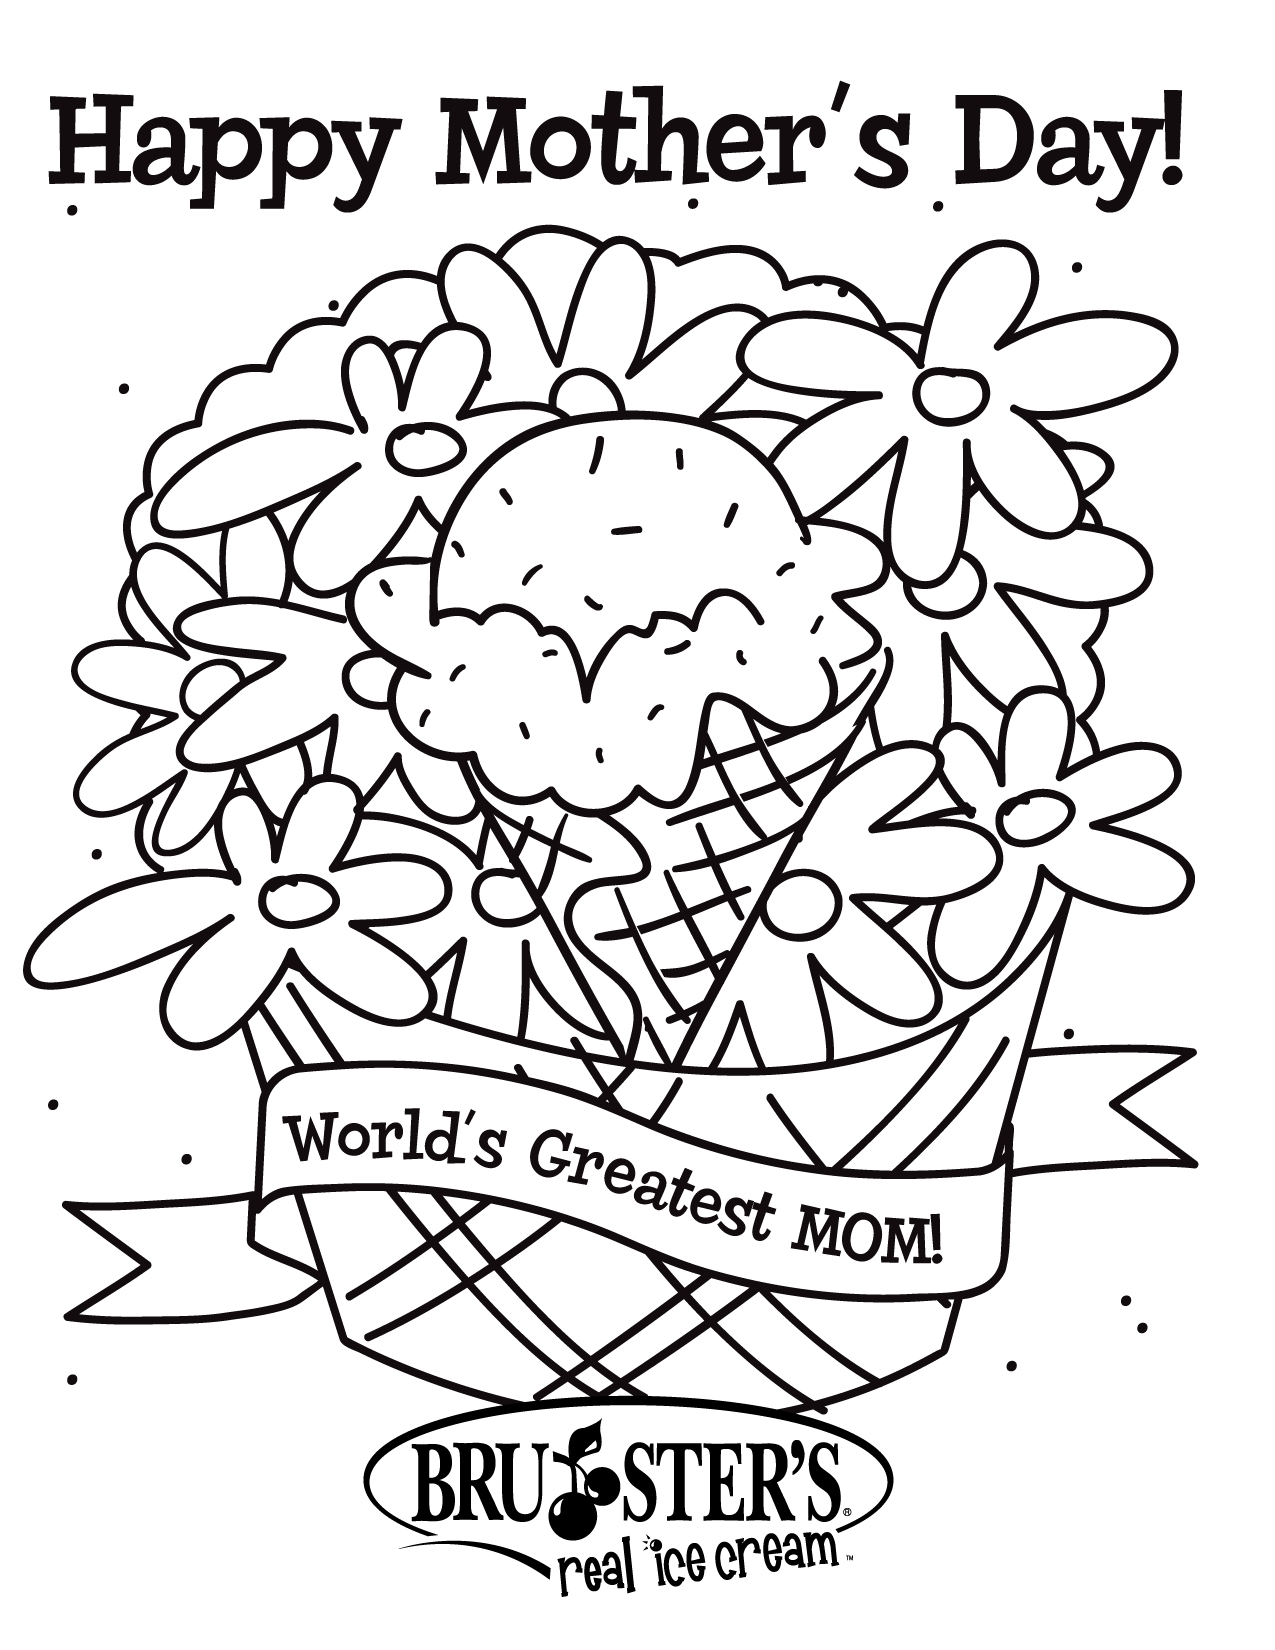 24 free mothers day coloring pages images - Free Mothers Day Coloring Pages 2